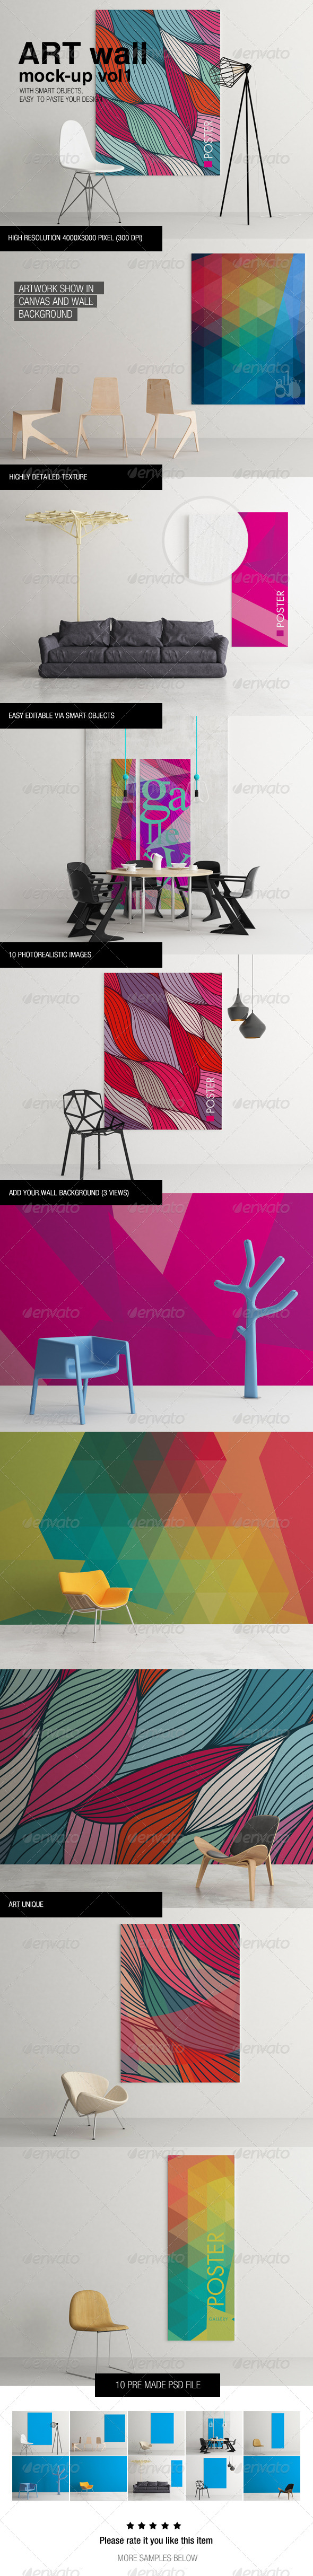 Art Wall Mock-up Vol.1 - Miscellaneous Displays